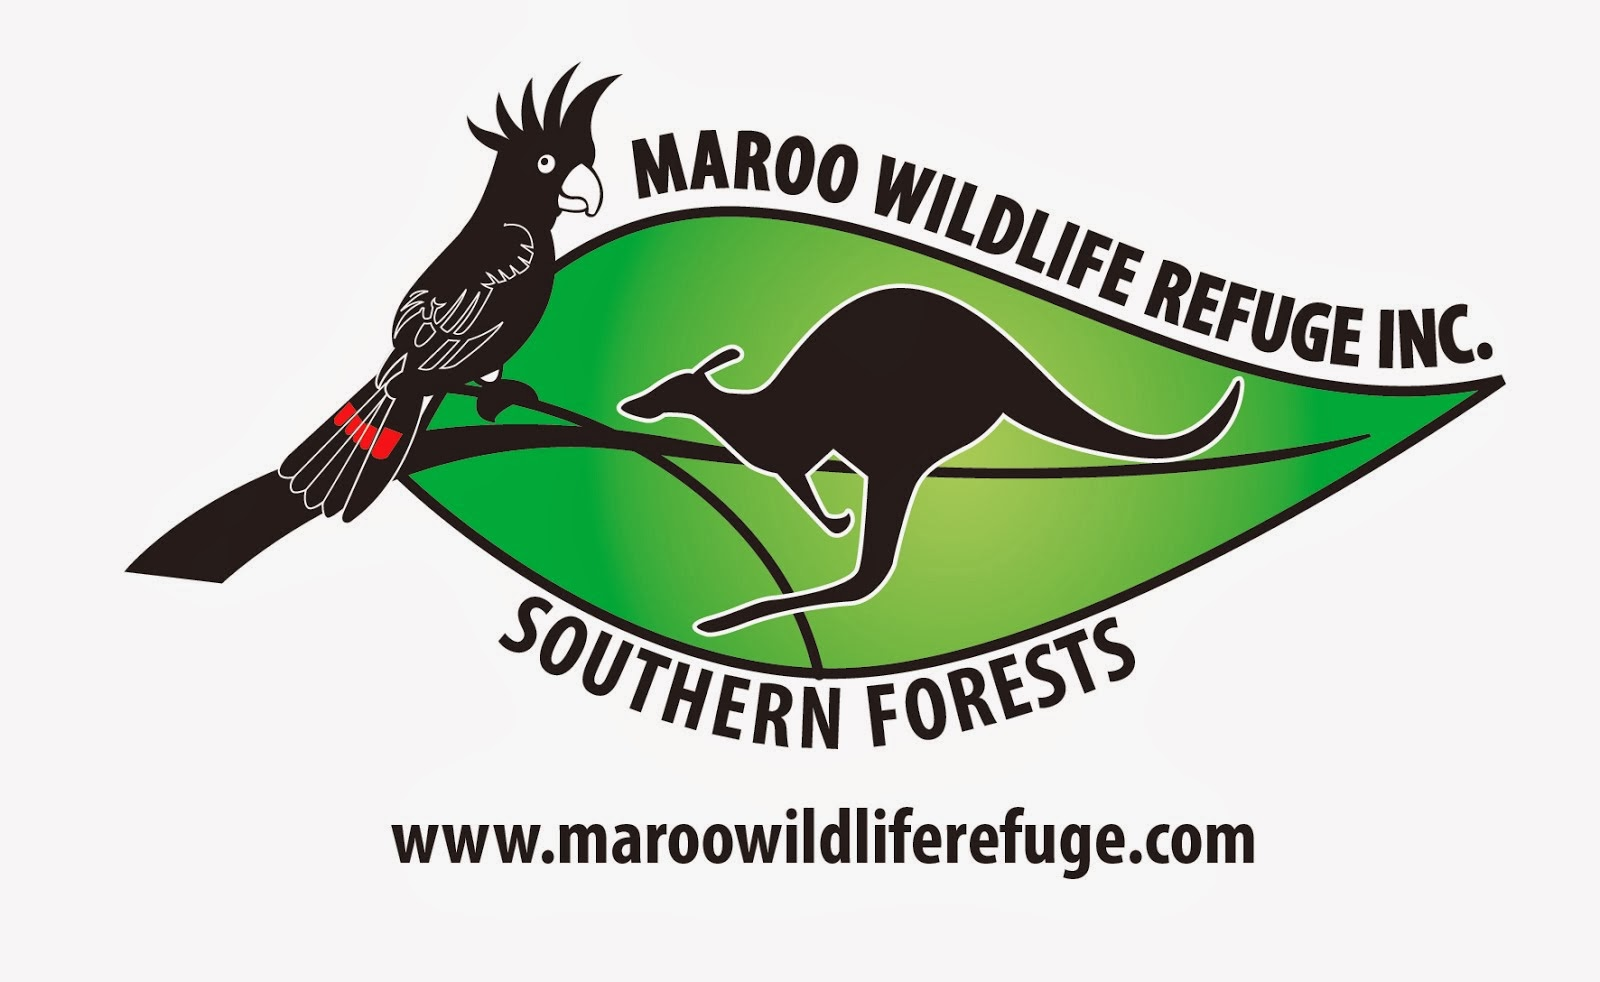 Maroo Wildlife Refuge Inc